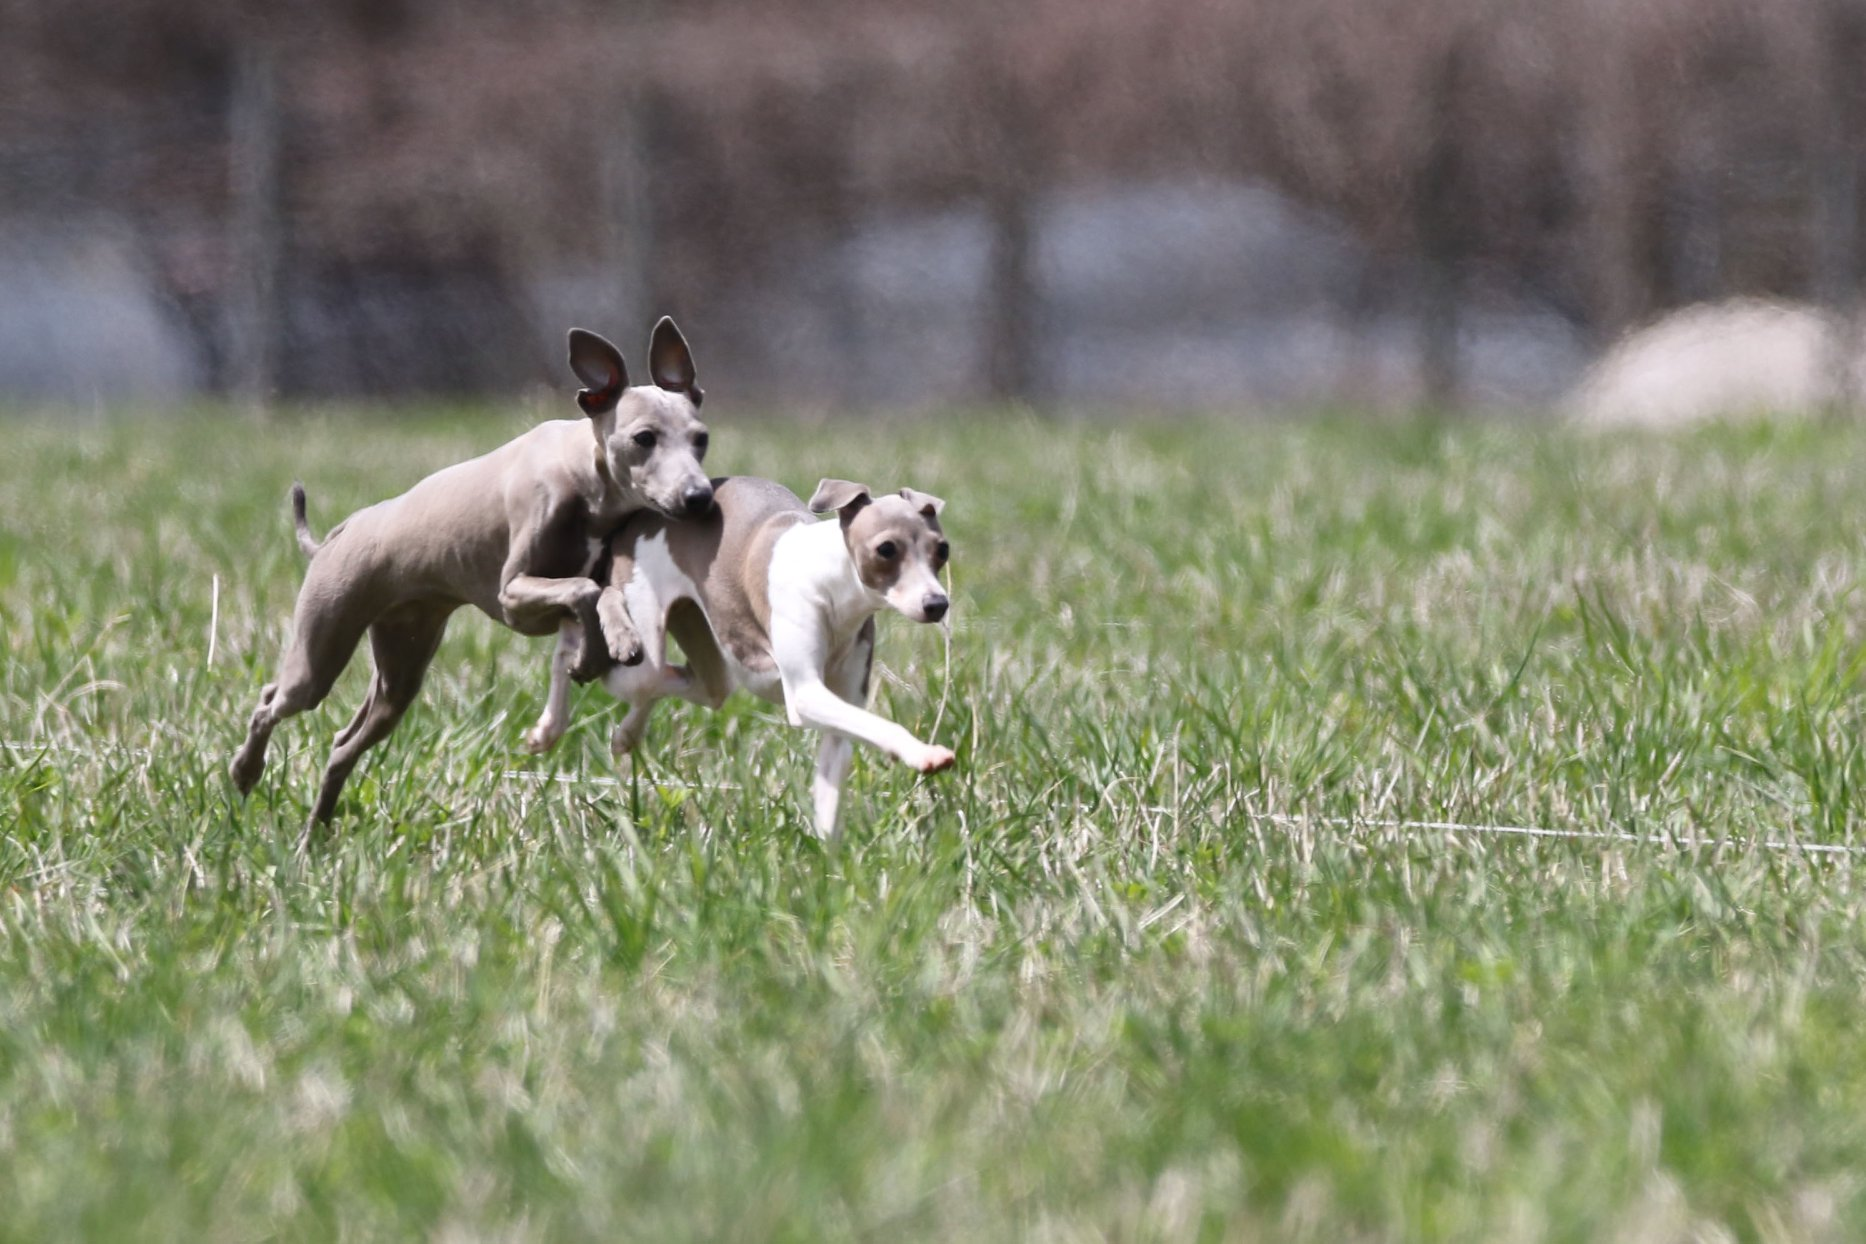 Italian Greyhound puppies running in practice photo courtesy of Clint Ellery